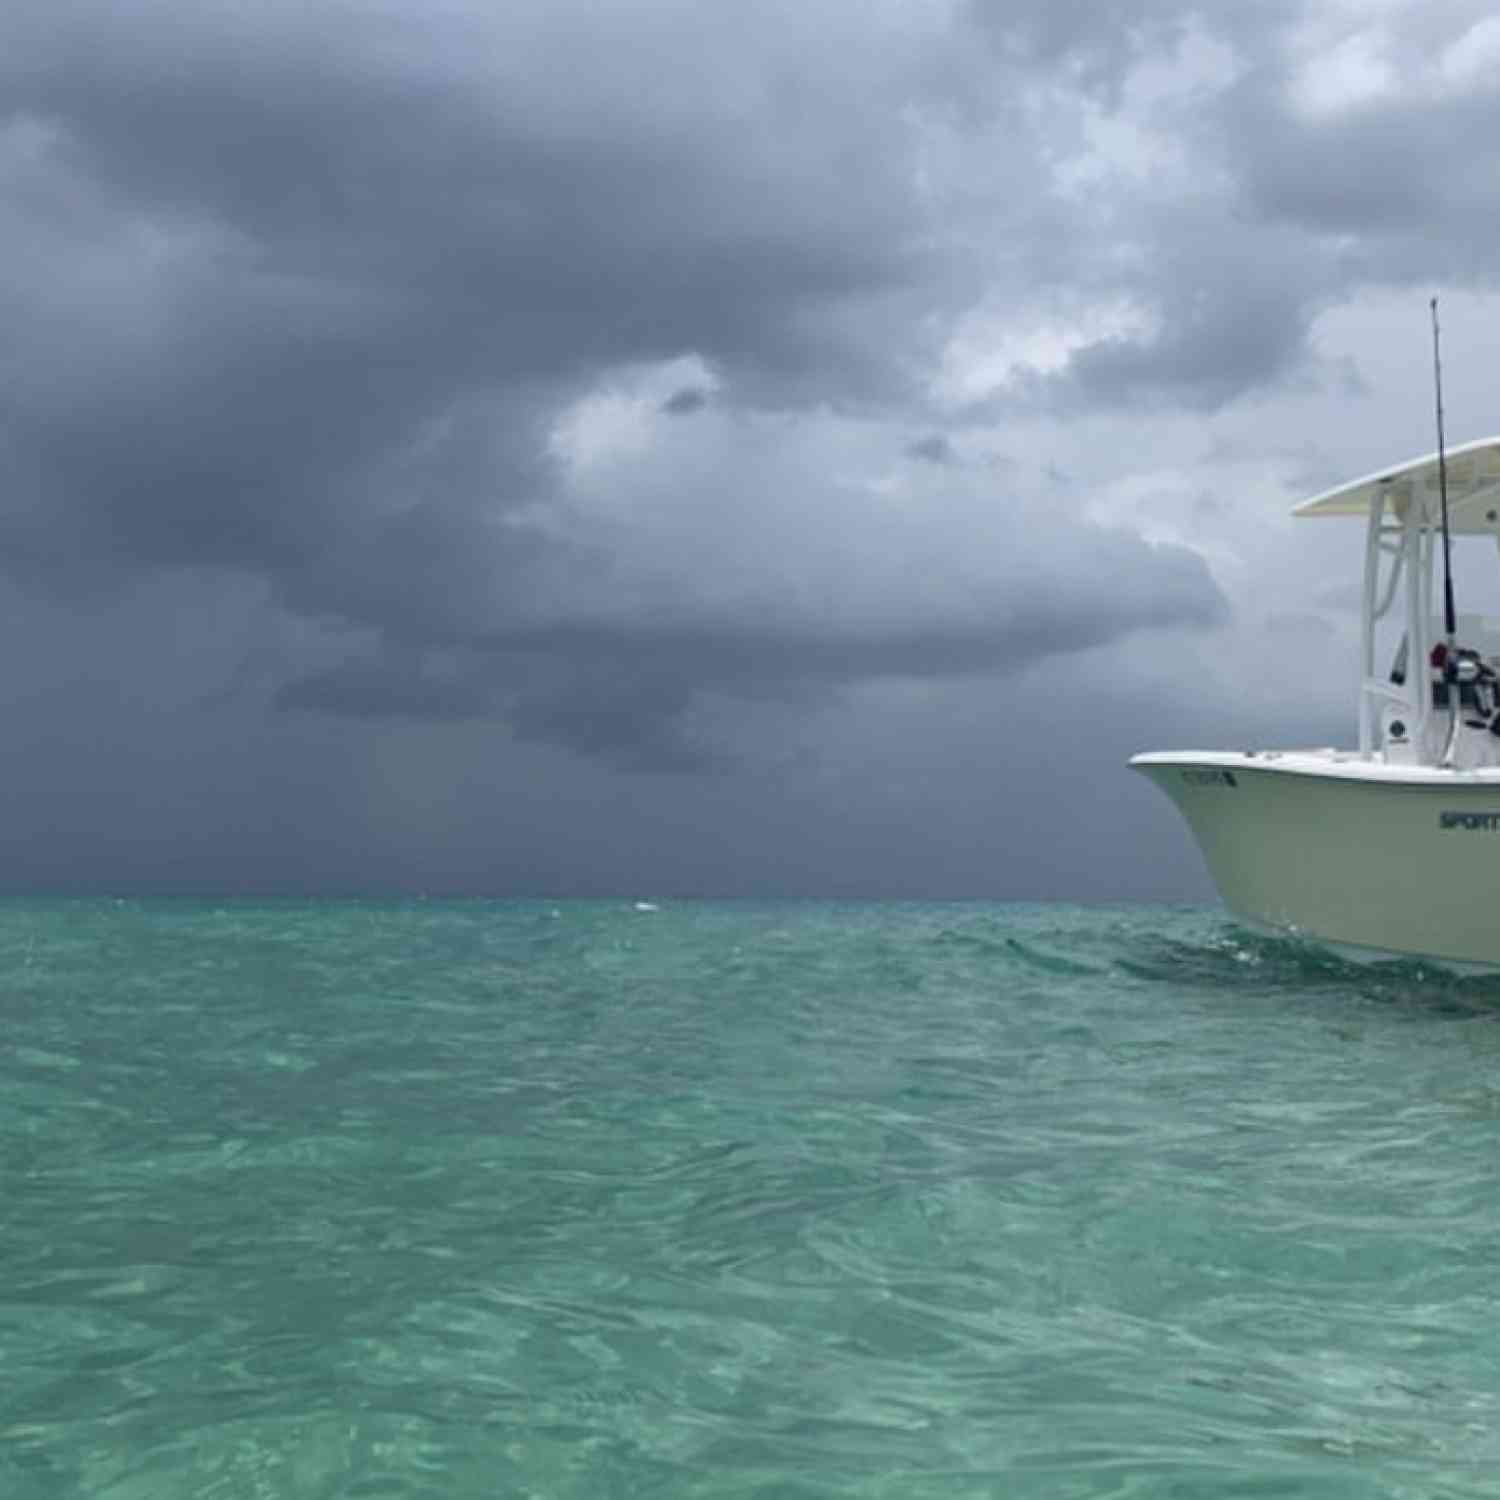 Title: Dark sky's clear water - On board their Sportsman Heritage 231 Center Console - Location: Boynton beach FL. Participating in the Photo Contest #SportsmanAugust2020